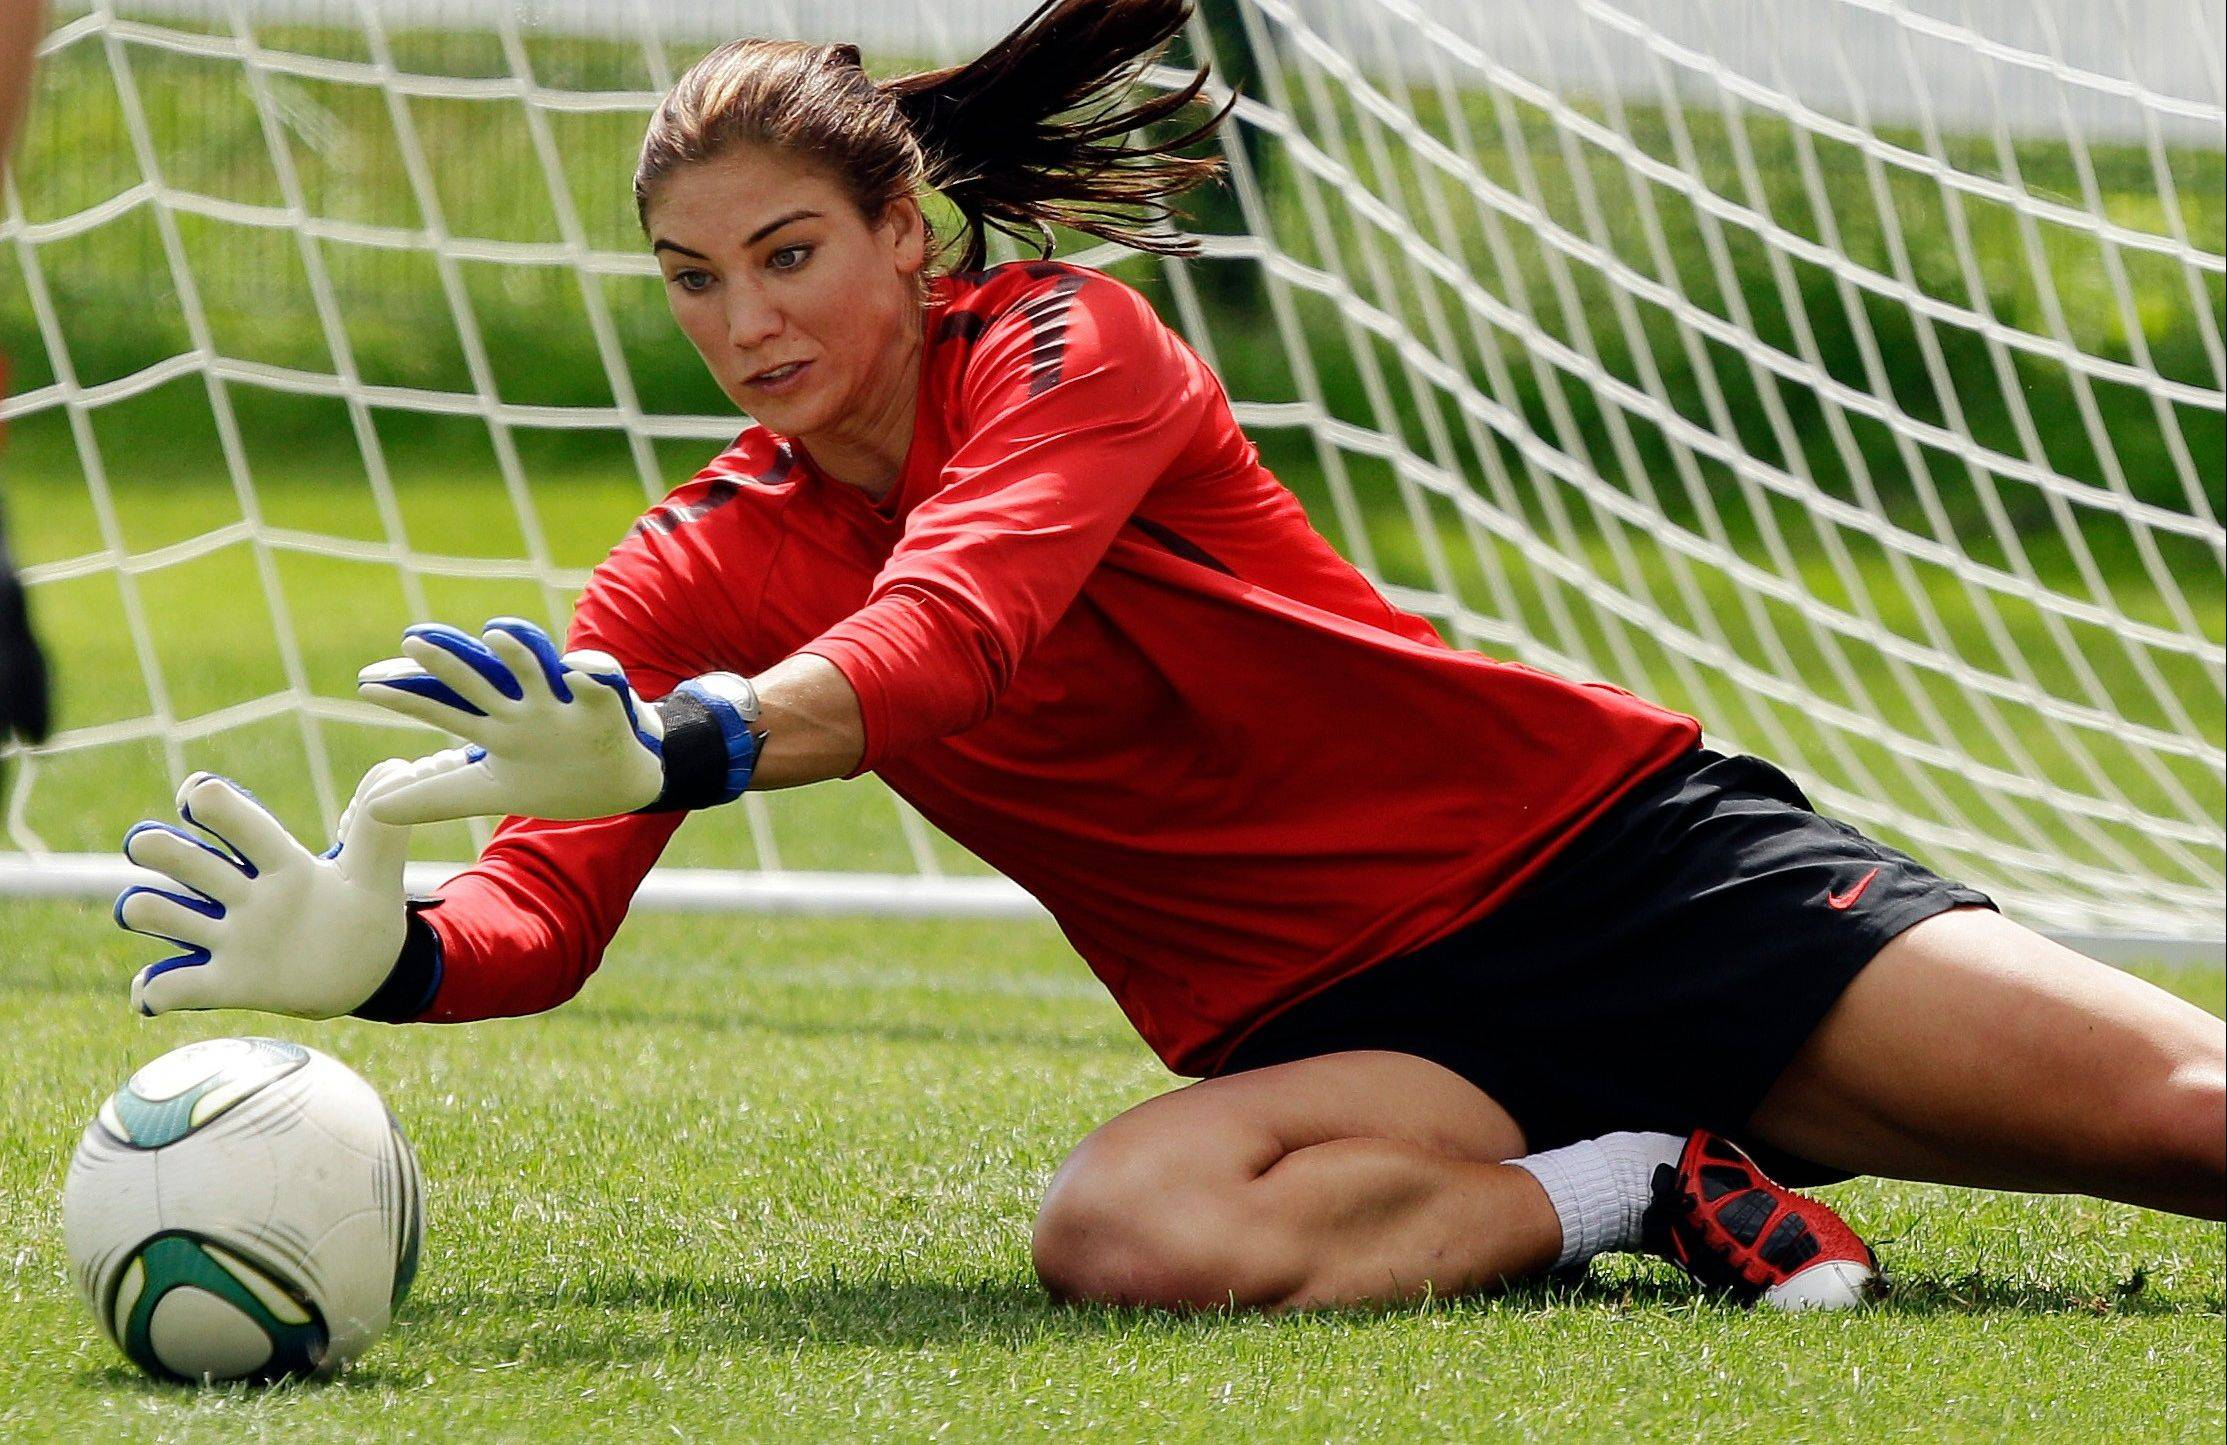 United States goalkeeper Hope Solo stops a shot during practice before the Women's World Cup in Dresden, Germany.